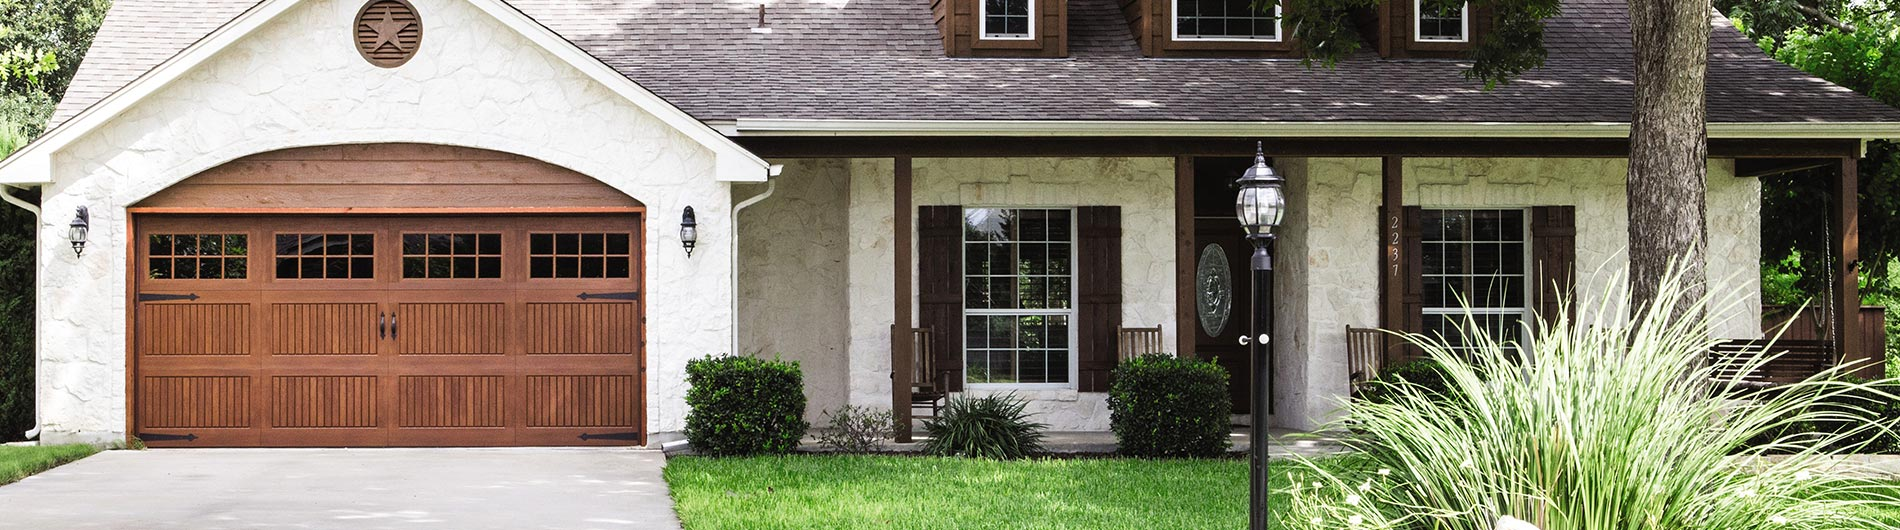 Three Common Problems With Residential Garage Doors